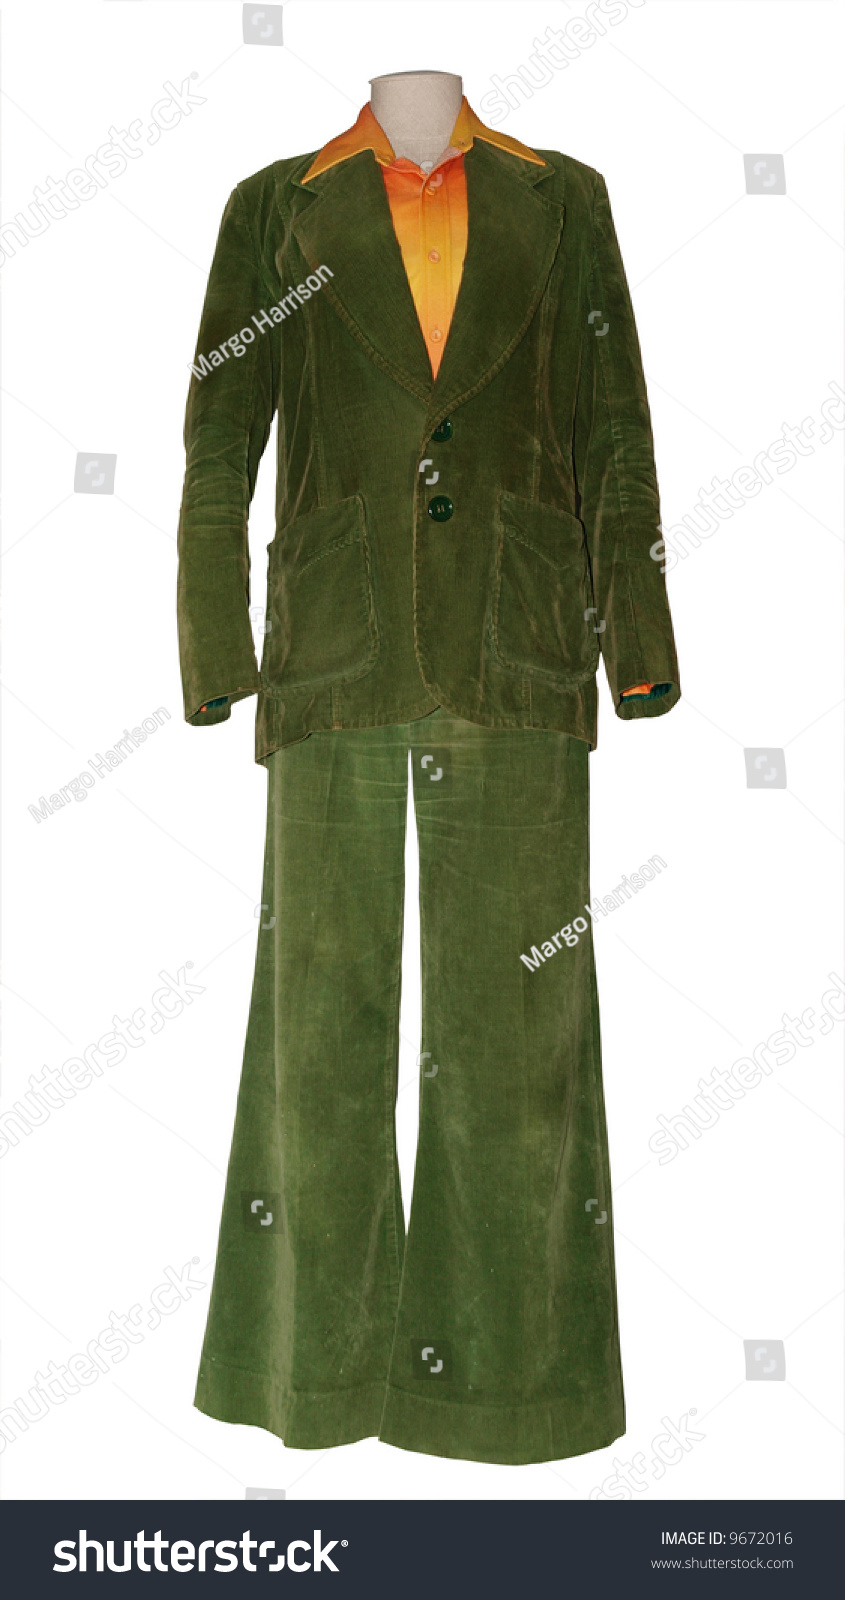 0c45fa45d8b9 Old Olive Corduroy Trouser Suit On Stock Photo (Edit Now) 9672016 ...